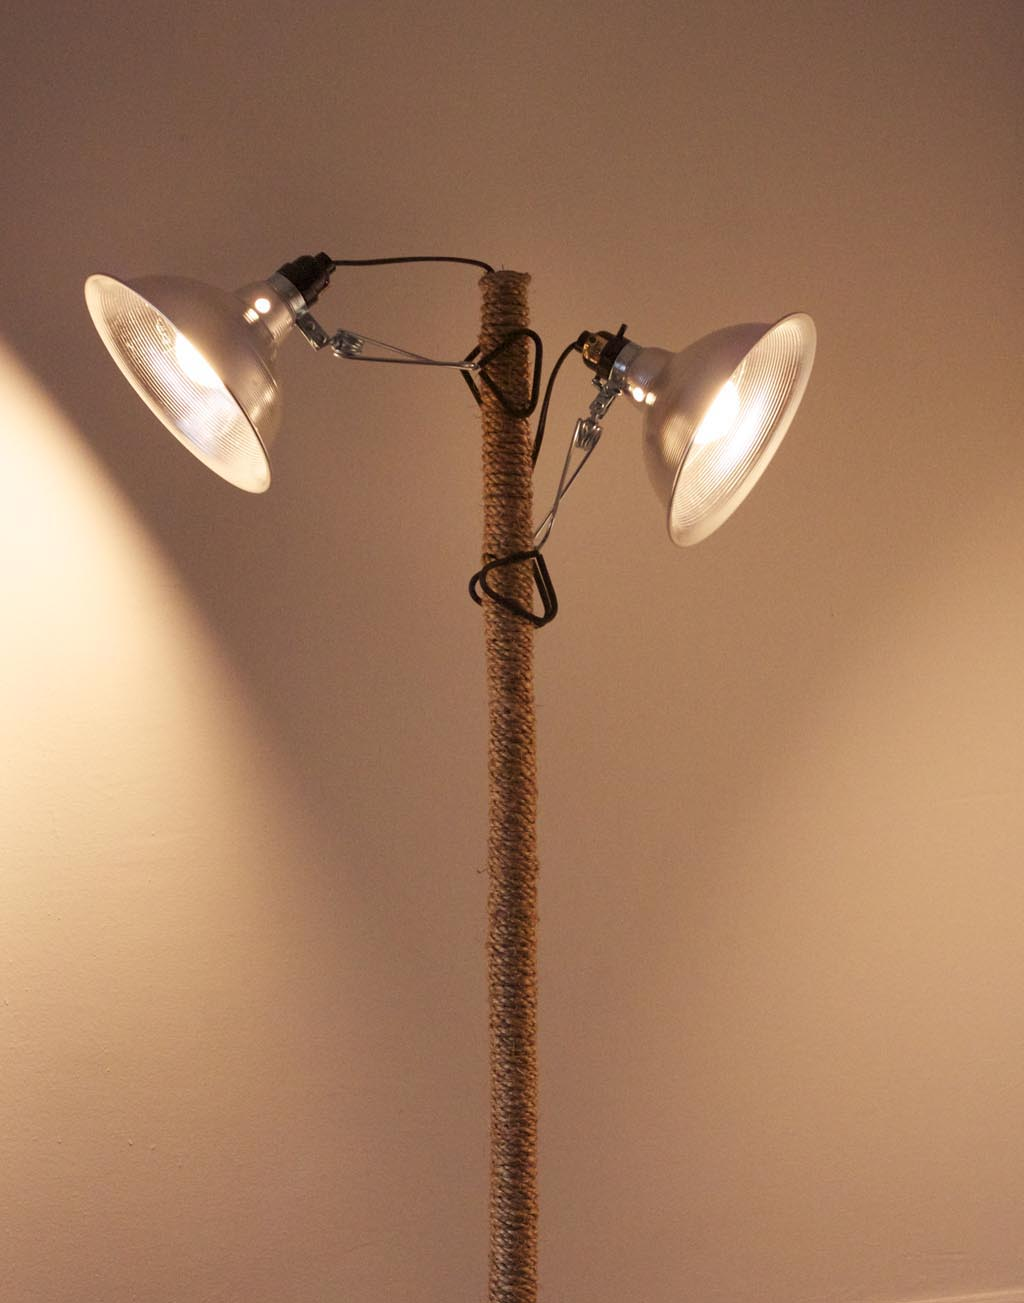 DIY Industrial Floor Lamp